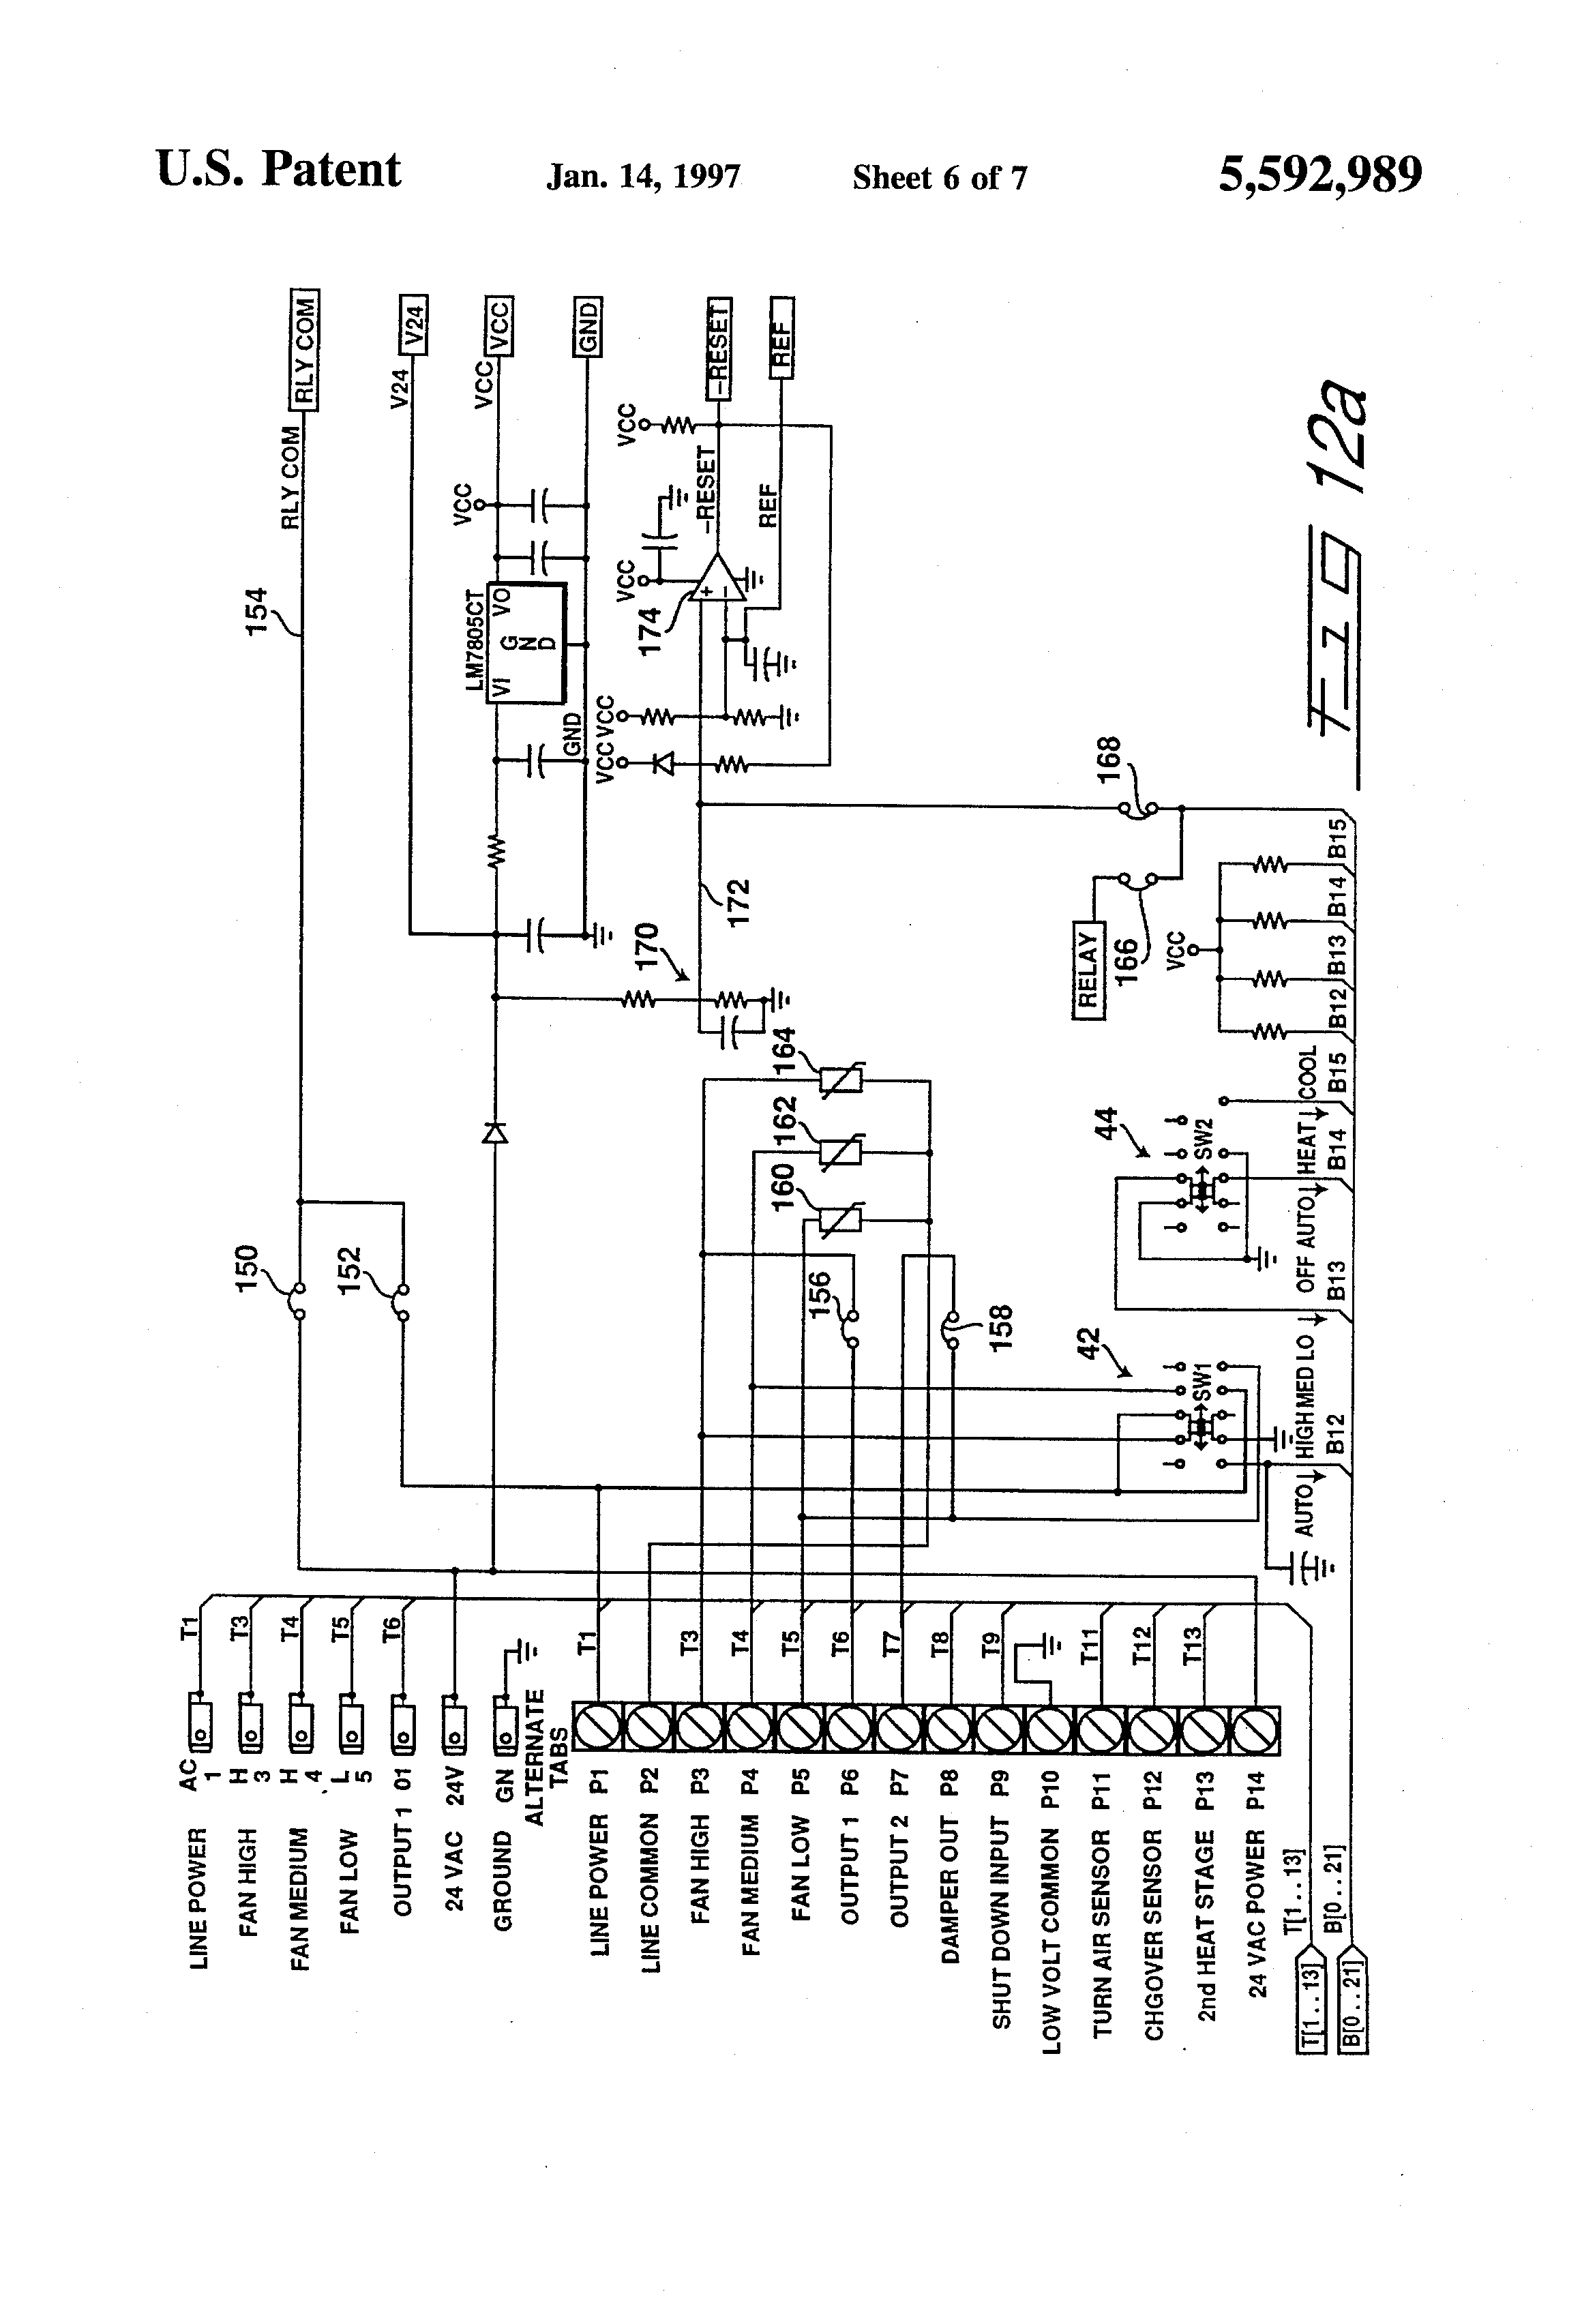 US5592989 6 patent us5592989 electronic thermostat having high and low fcu wiring diagram at sewacar.co